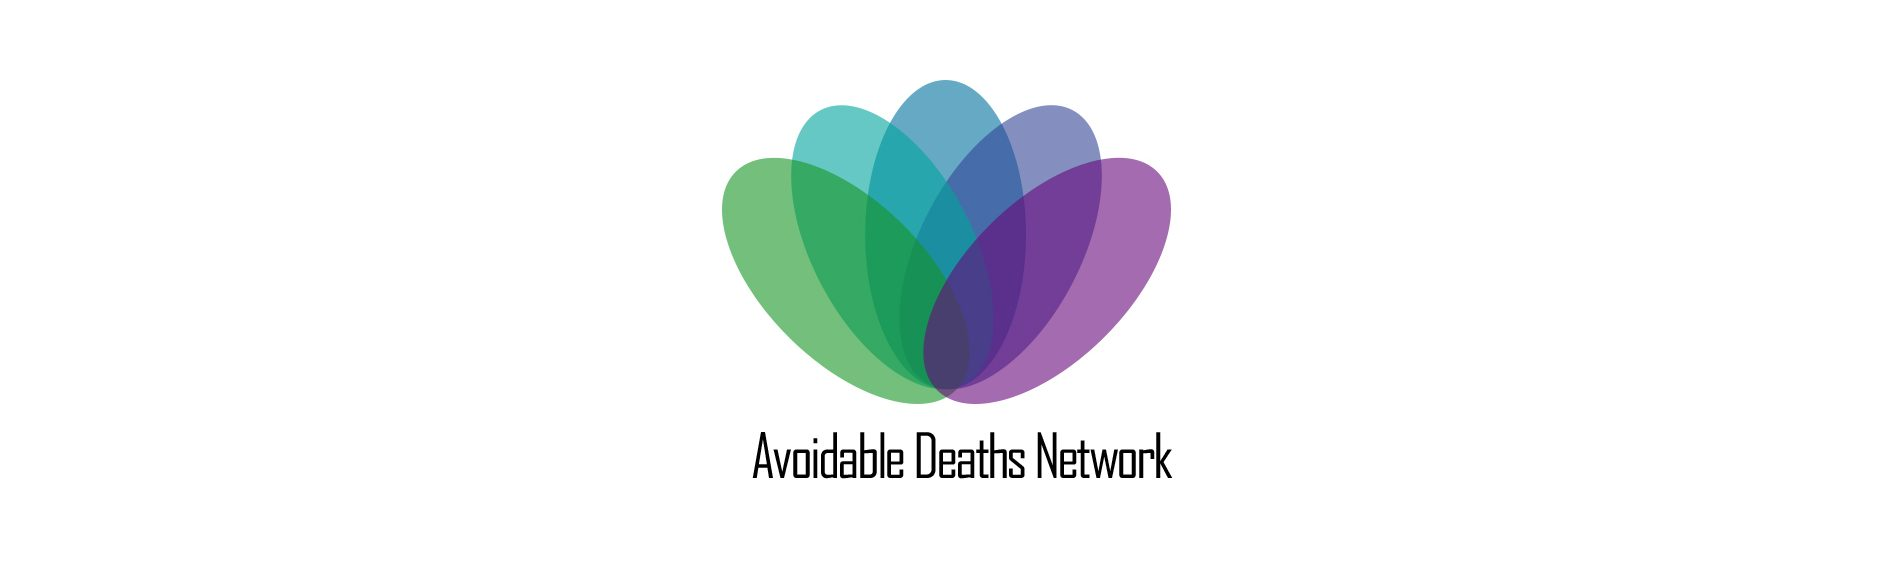 Avoidable Deaths Network